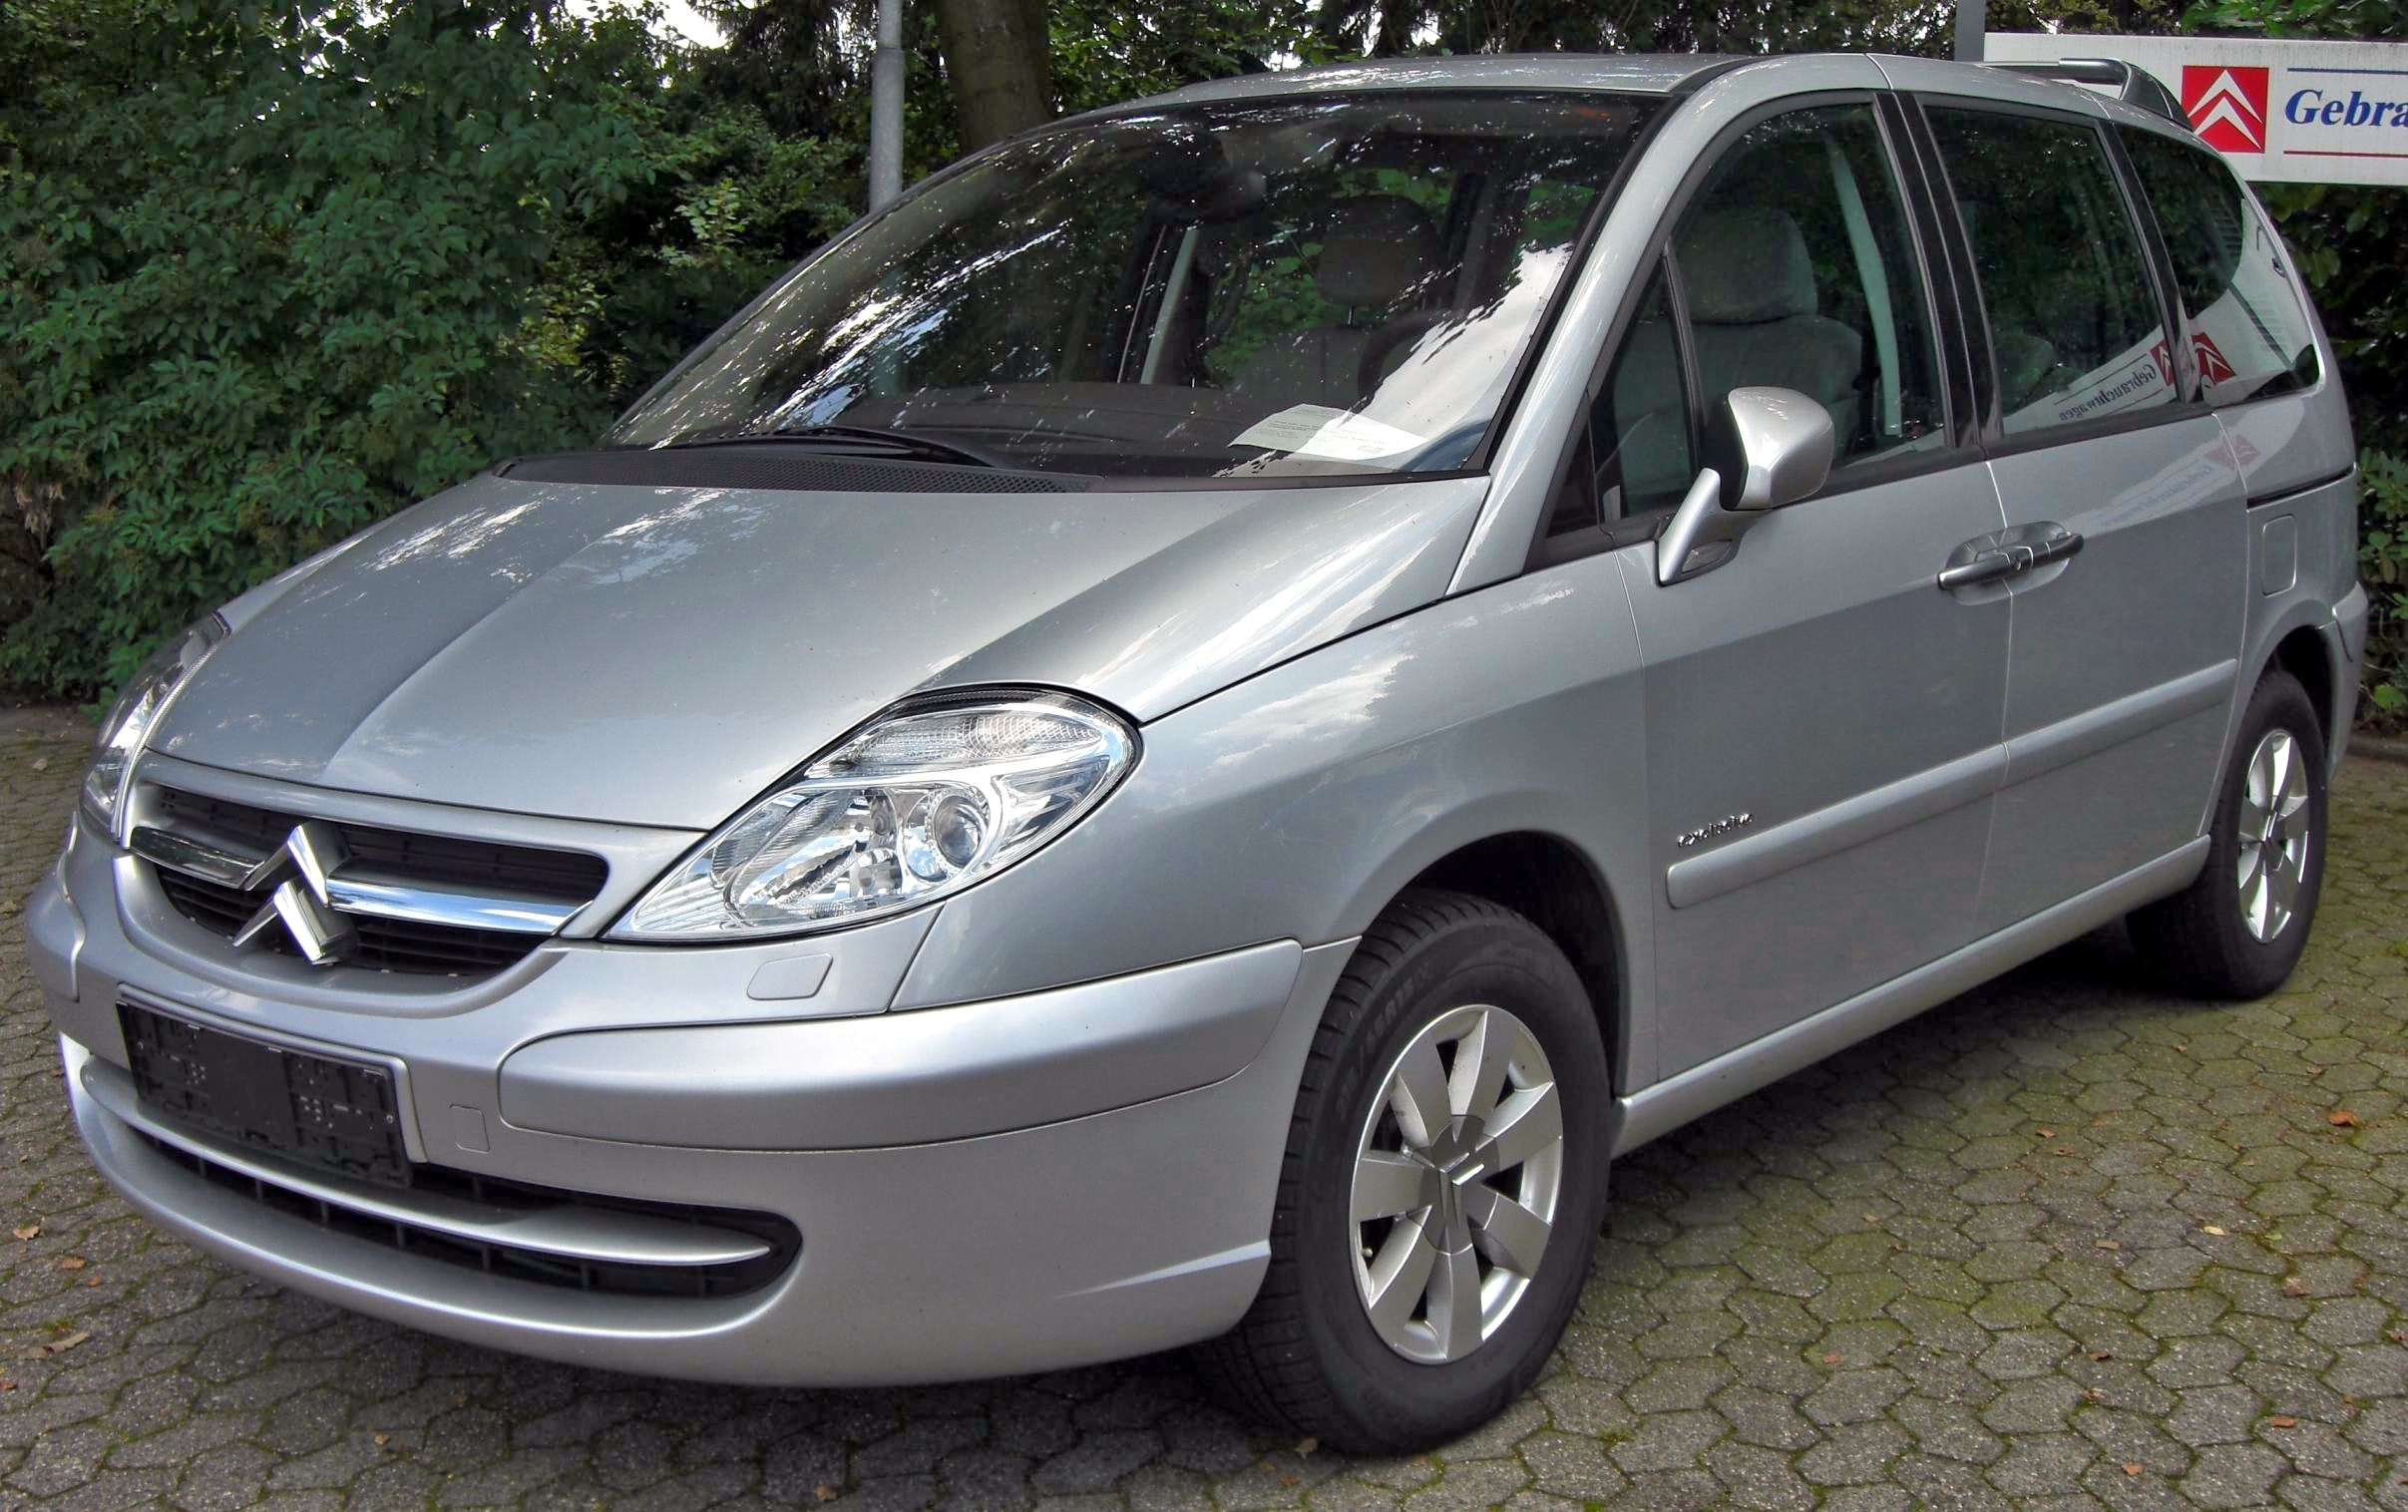 Citroen c8, 2003, Diesel, 7 places